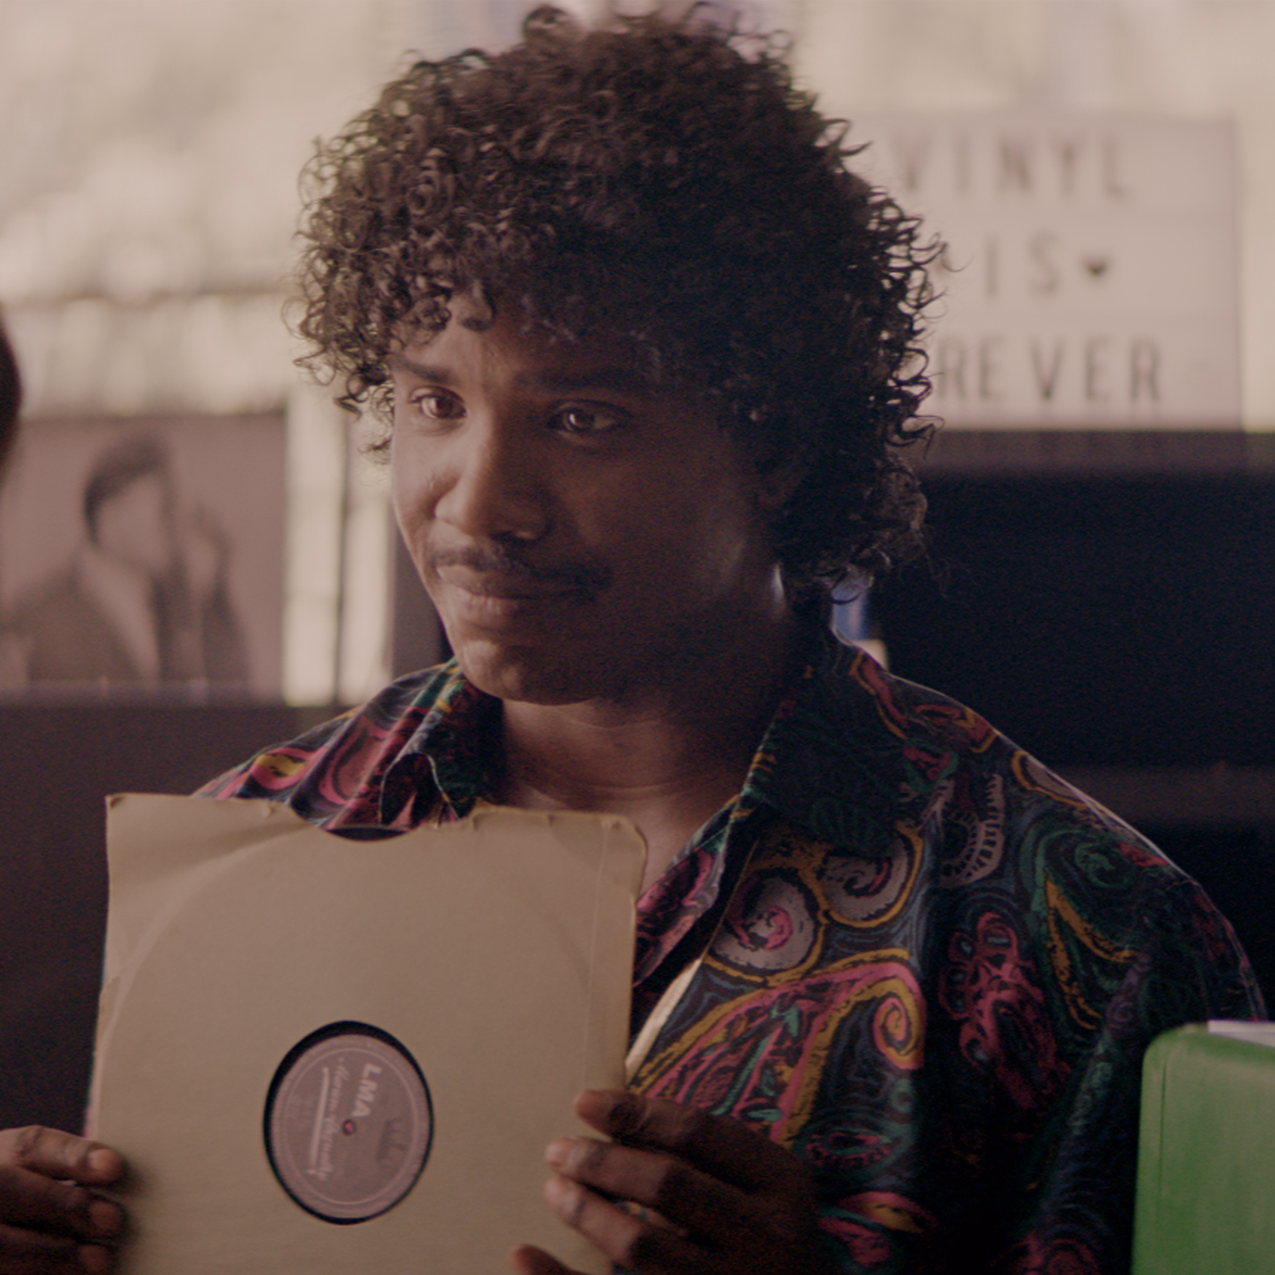 RON CONNOR as Paul BettisPaul runs a record store on Chicago's South Side. While Paul is passionate about his culture and its music, his morals and motives are sometimes questionable. -